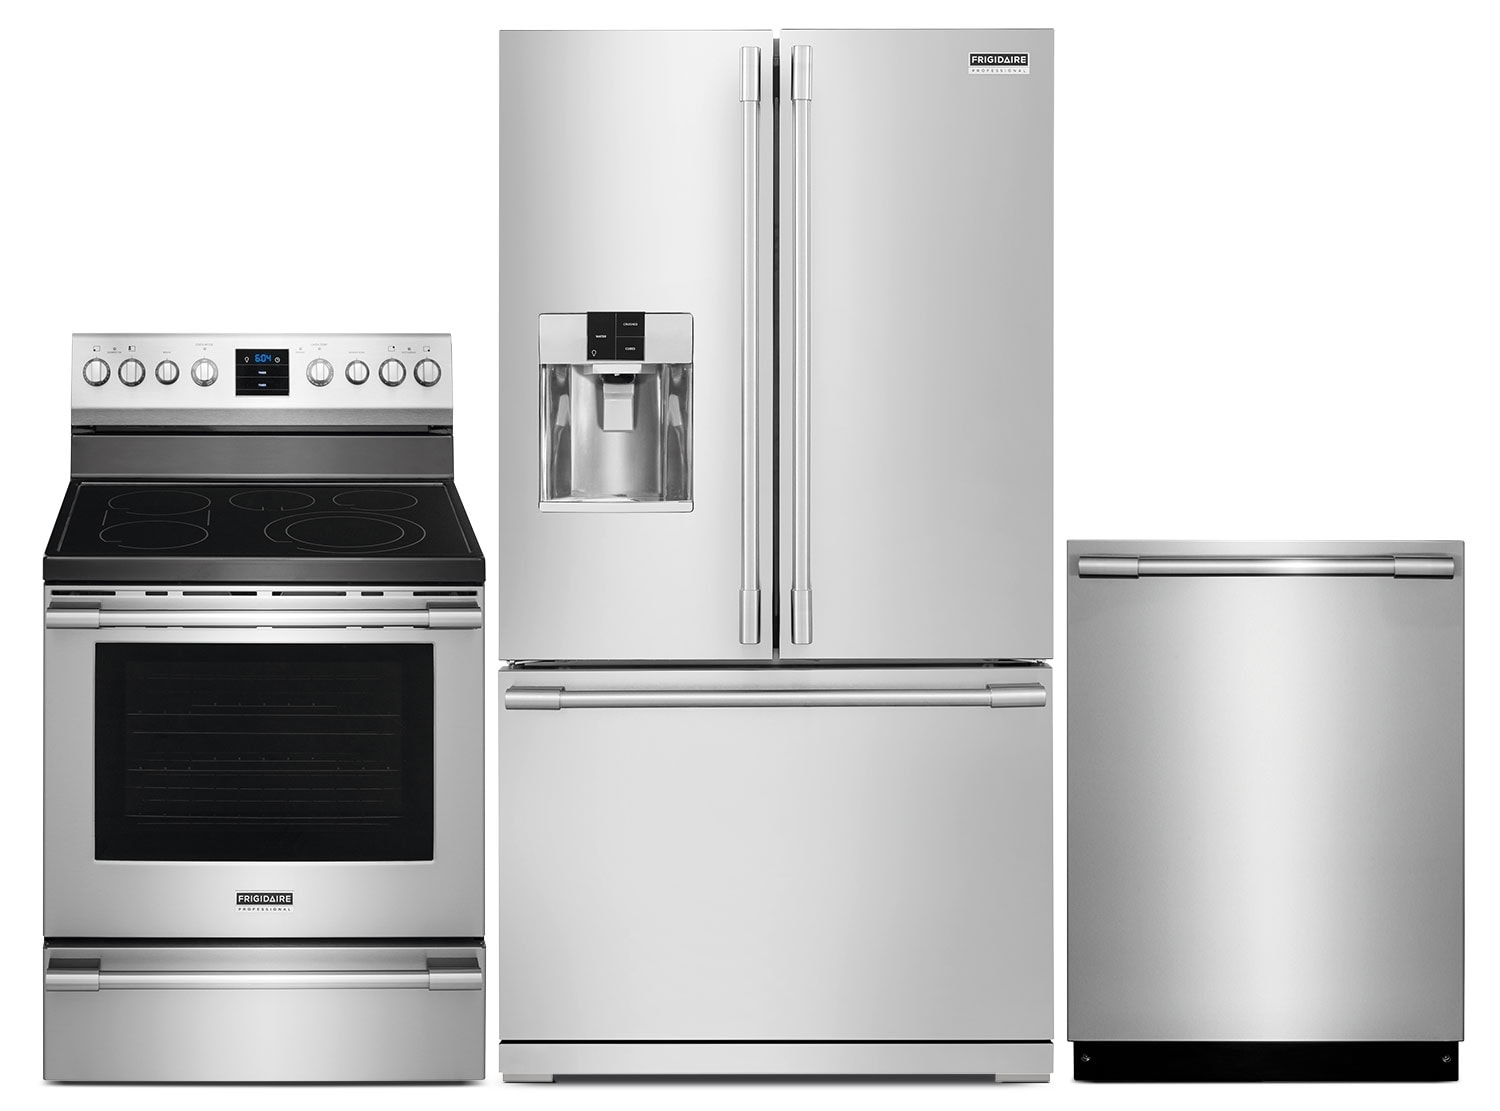 Frigidaire 27.8 Cu. Ft. Refrigerator, Convection Range and Dishwasher